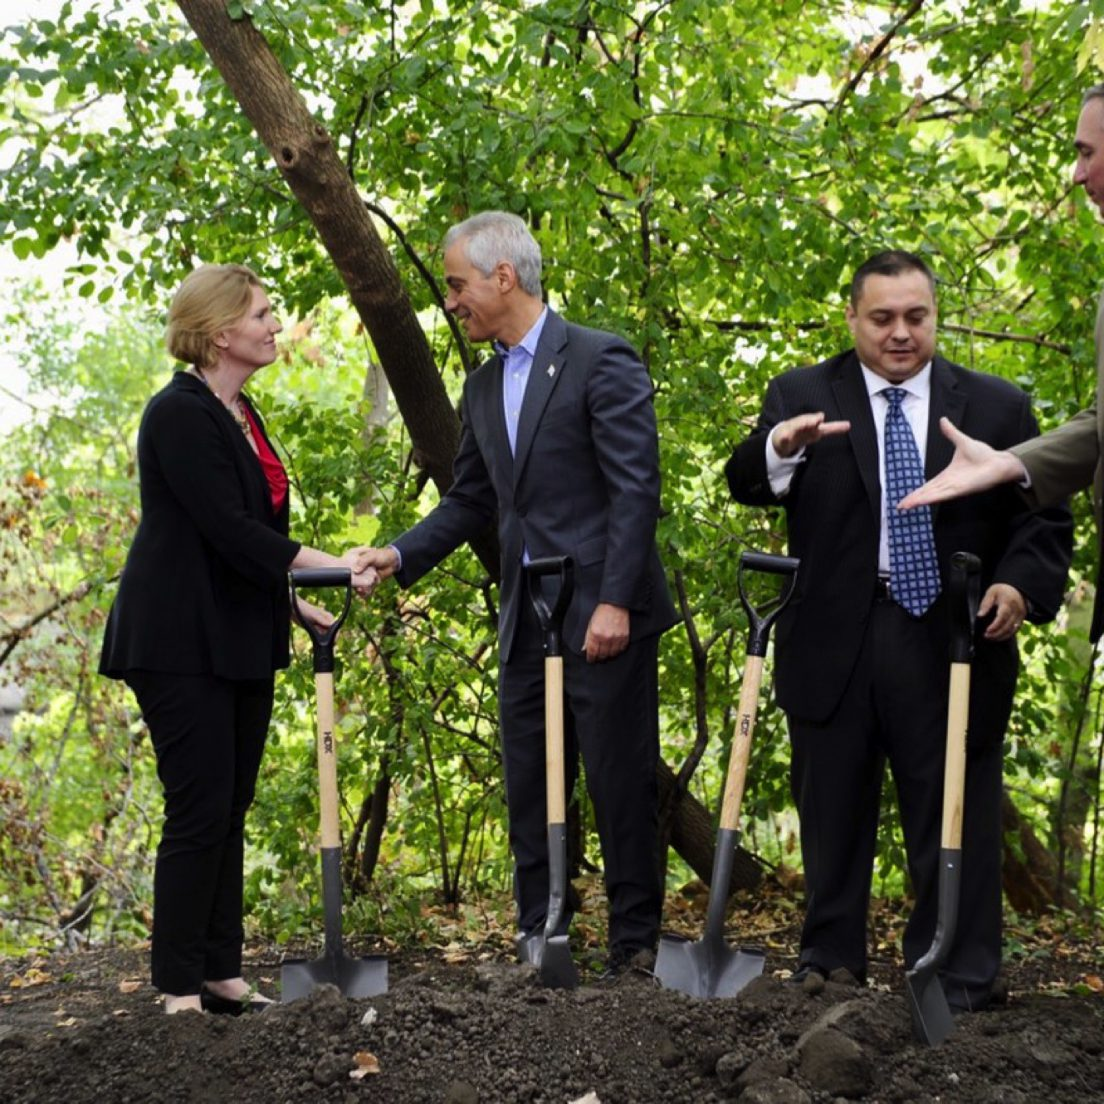 Mayor Rahm Emanuel at the 312 RiverRun groundbreaking (via Office of the Mayor of Chicago)